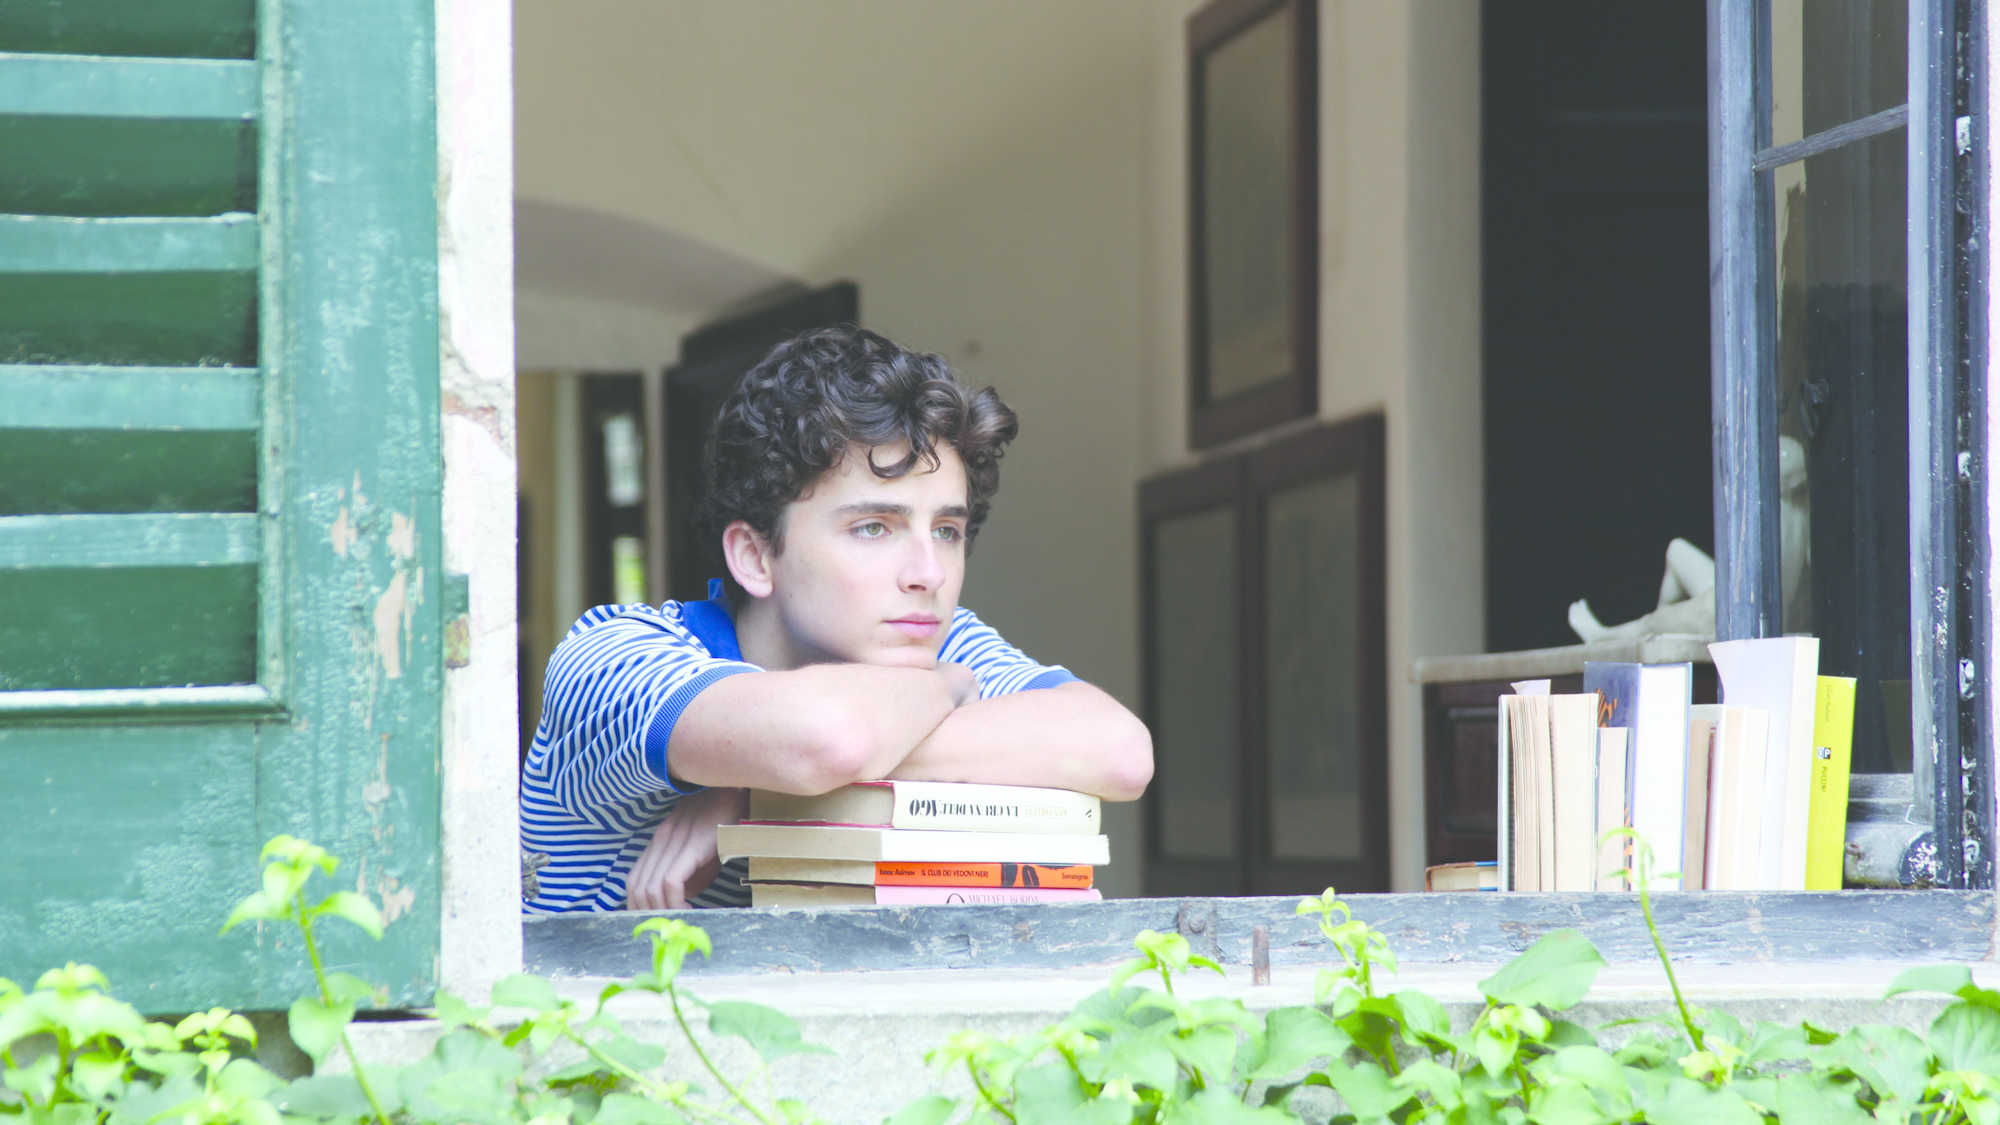 Call Me by Your Name (image 3)